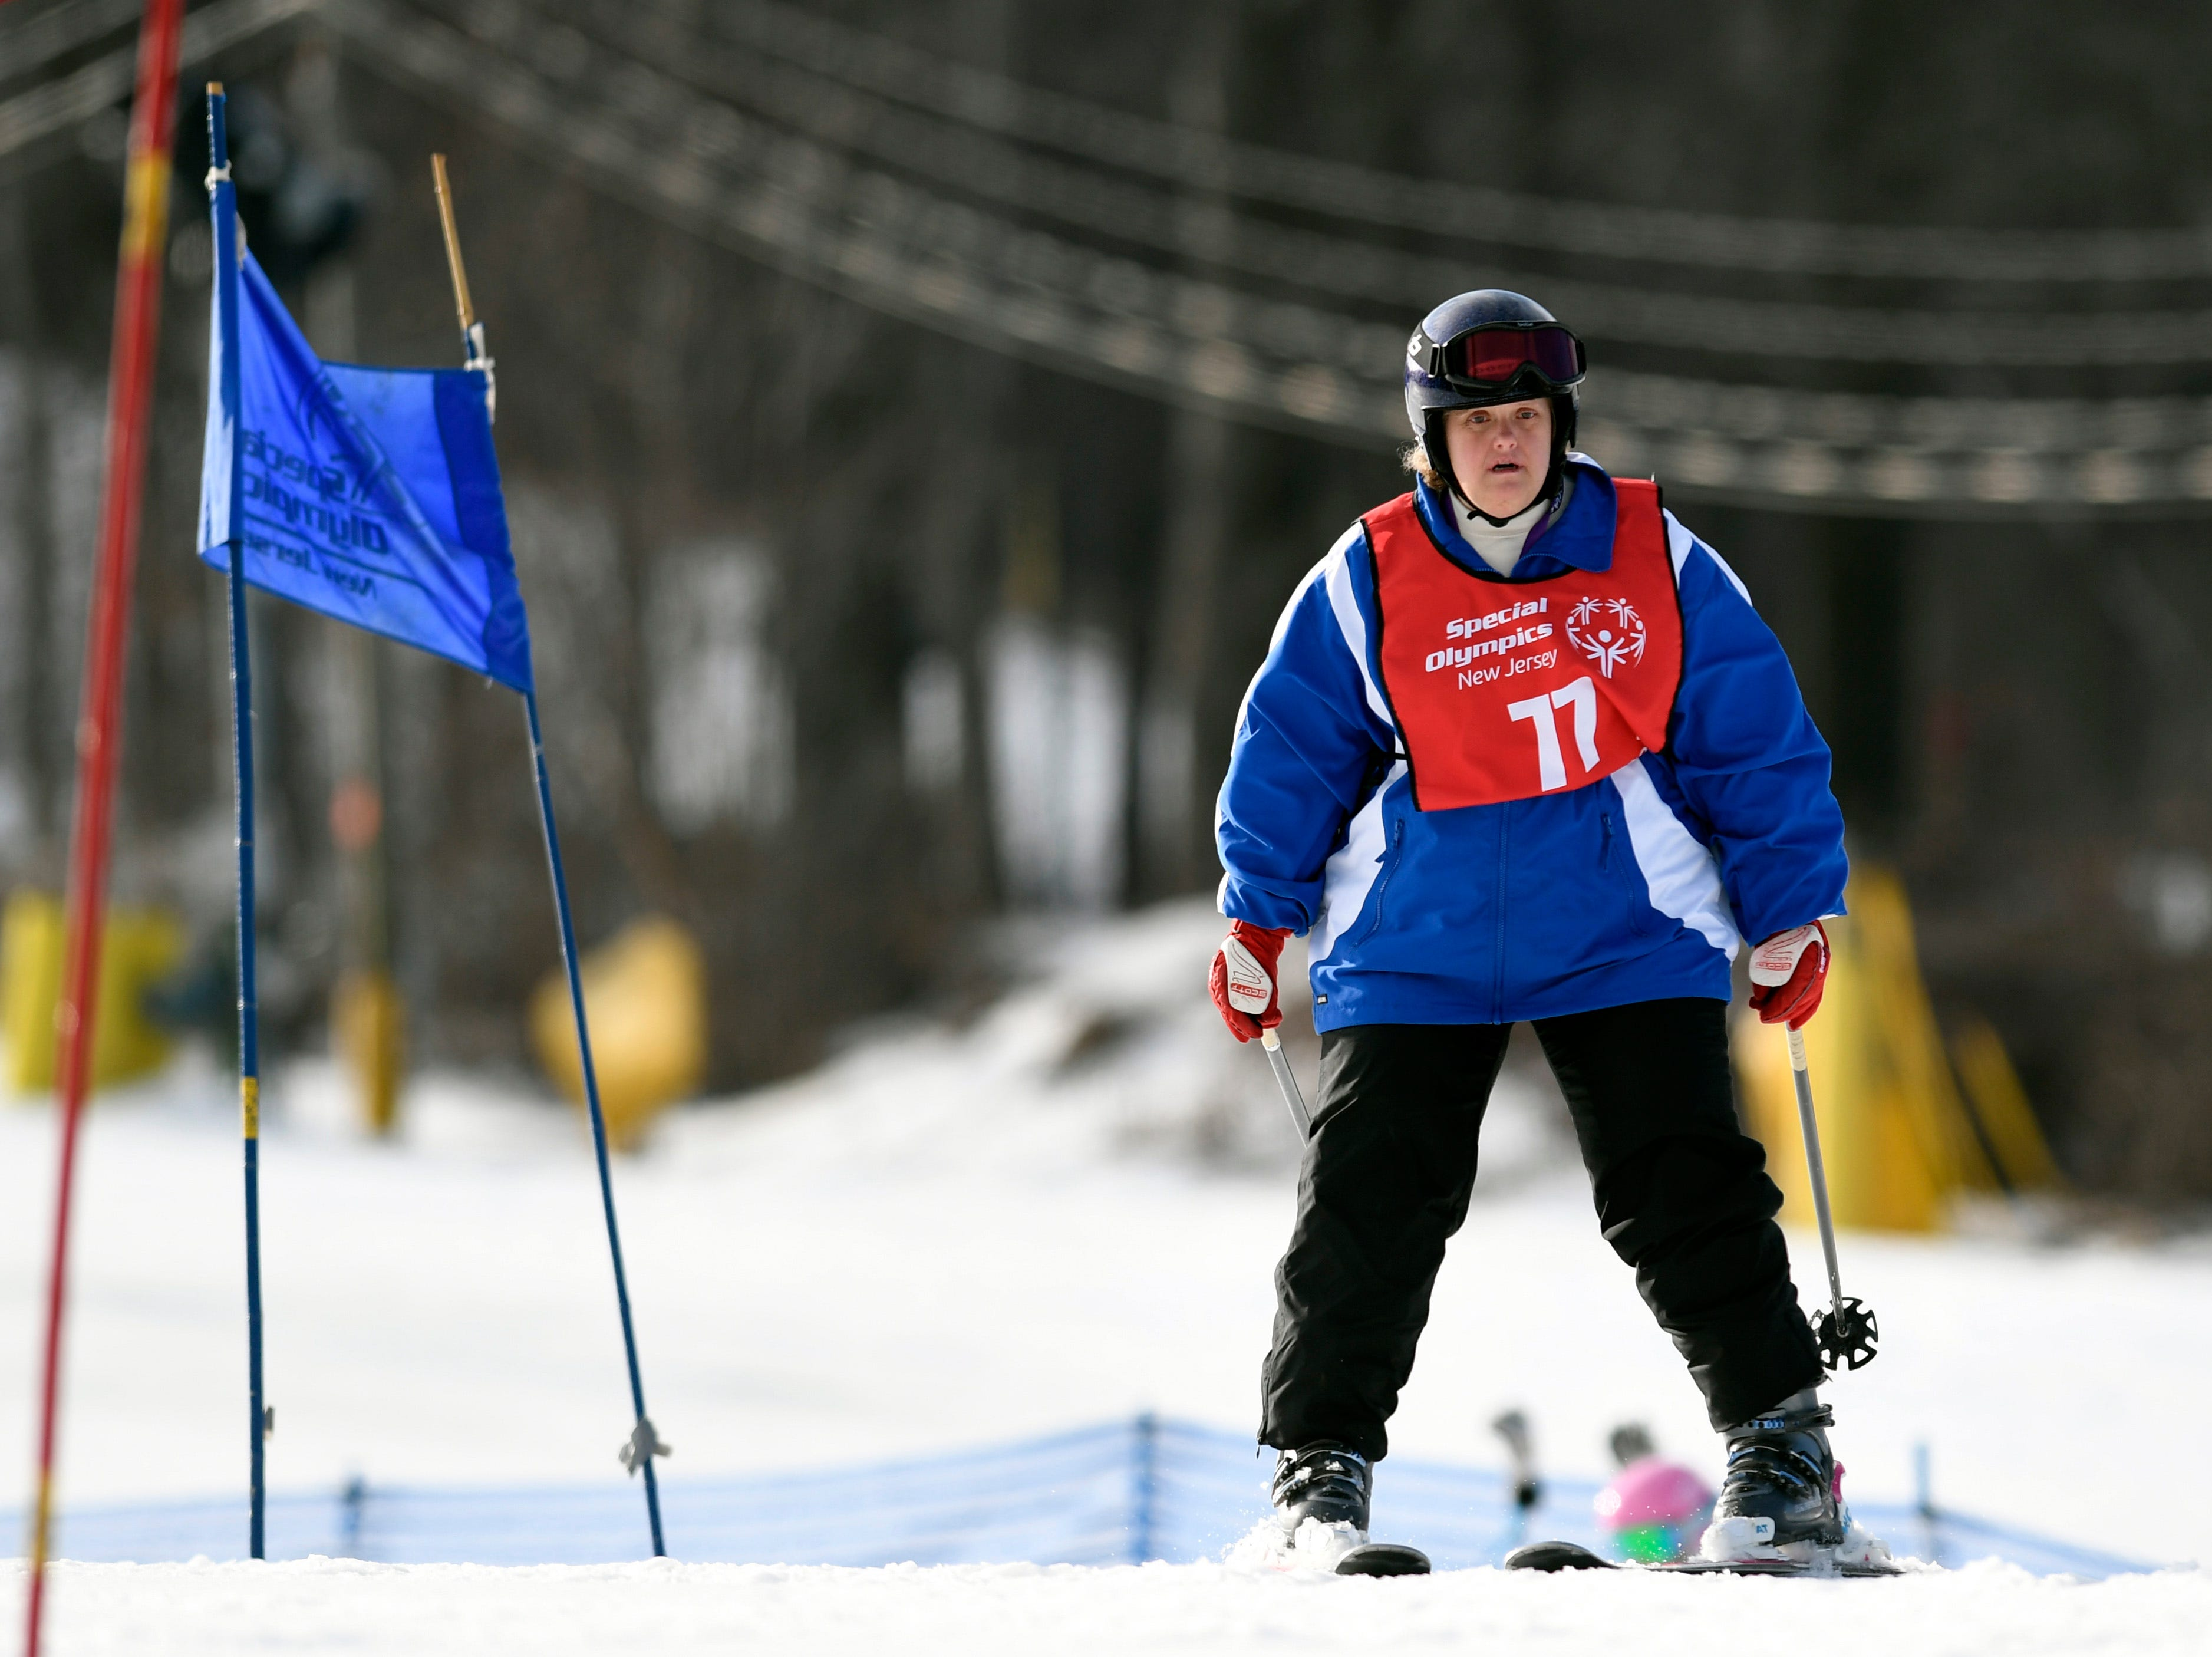 Linda Kent of Paramus competes in the giant slalom during the Special Olympics New Jersey 2019 Winter Games on Tuesday, Feb. 5, 2019, in Vernon.